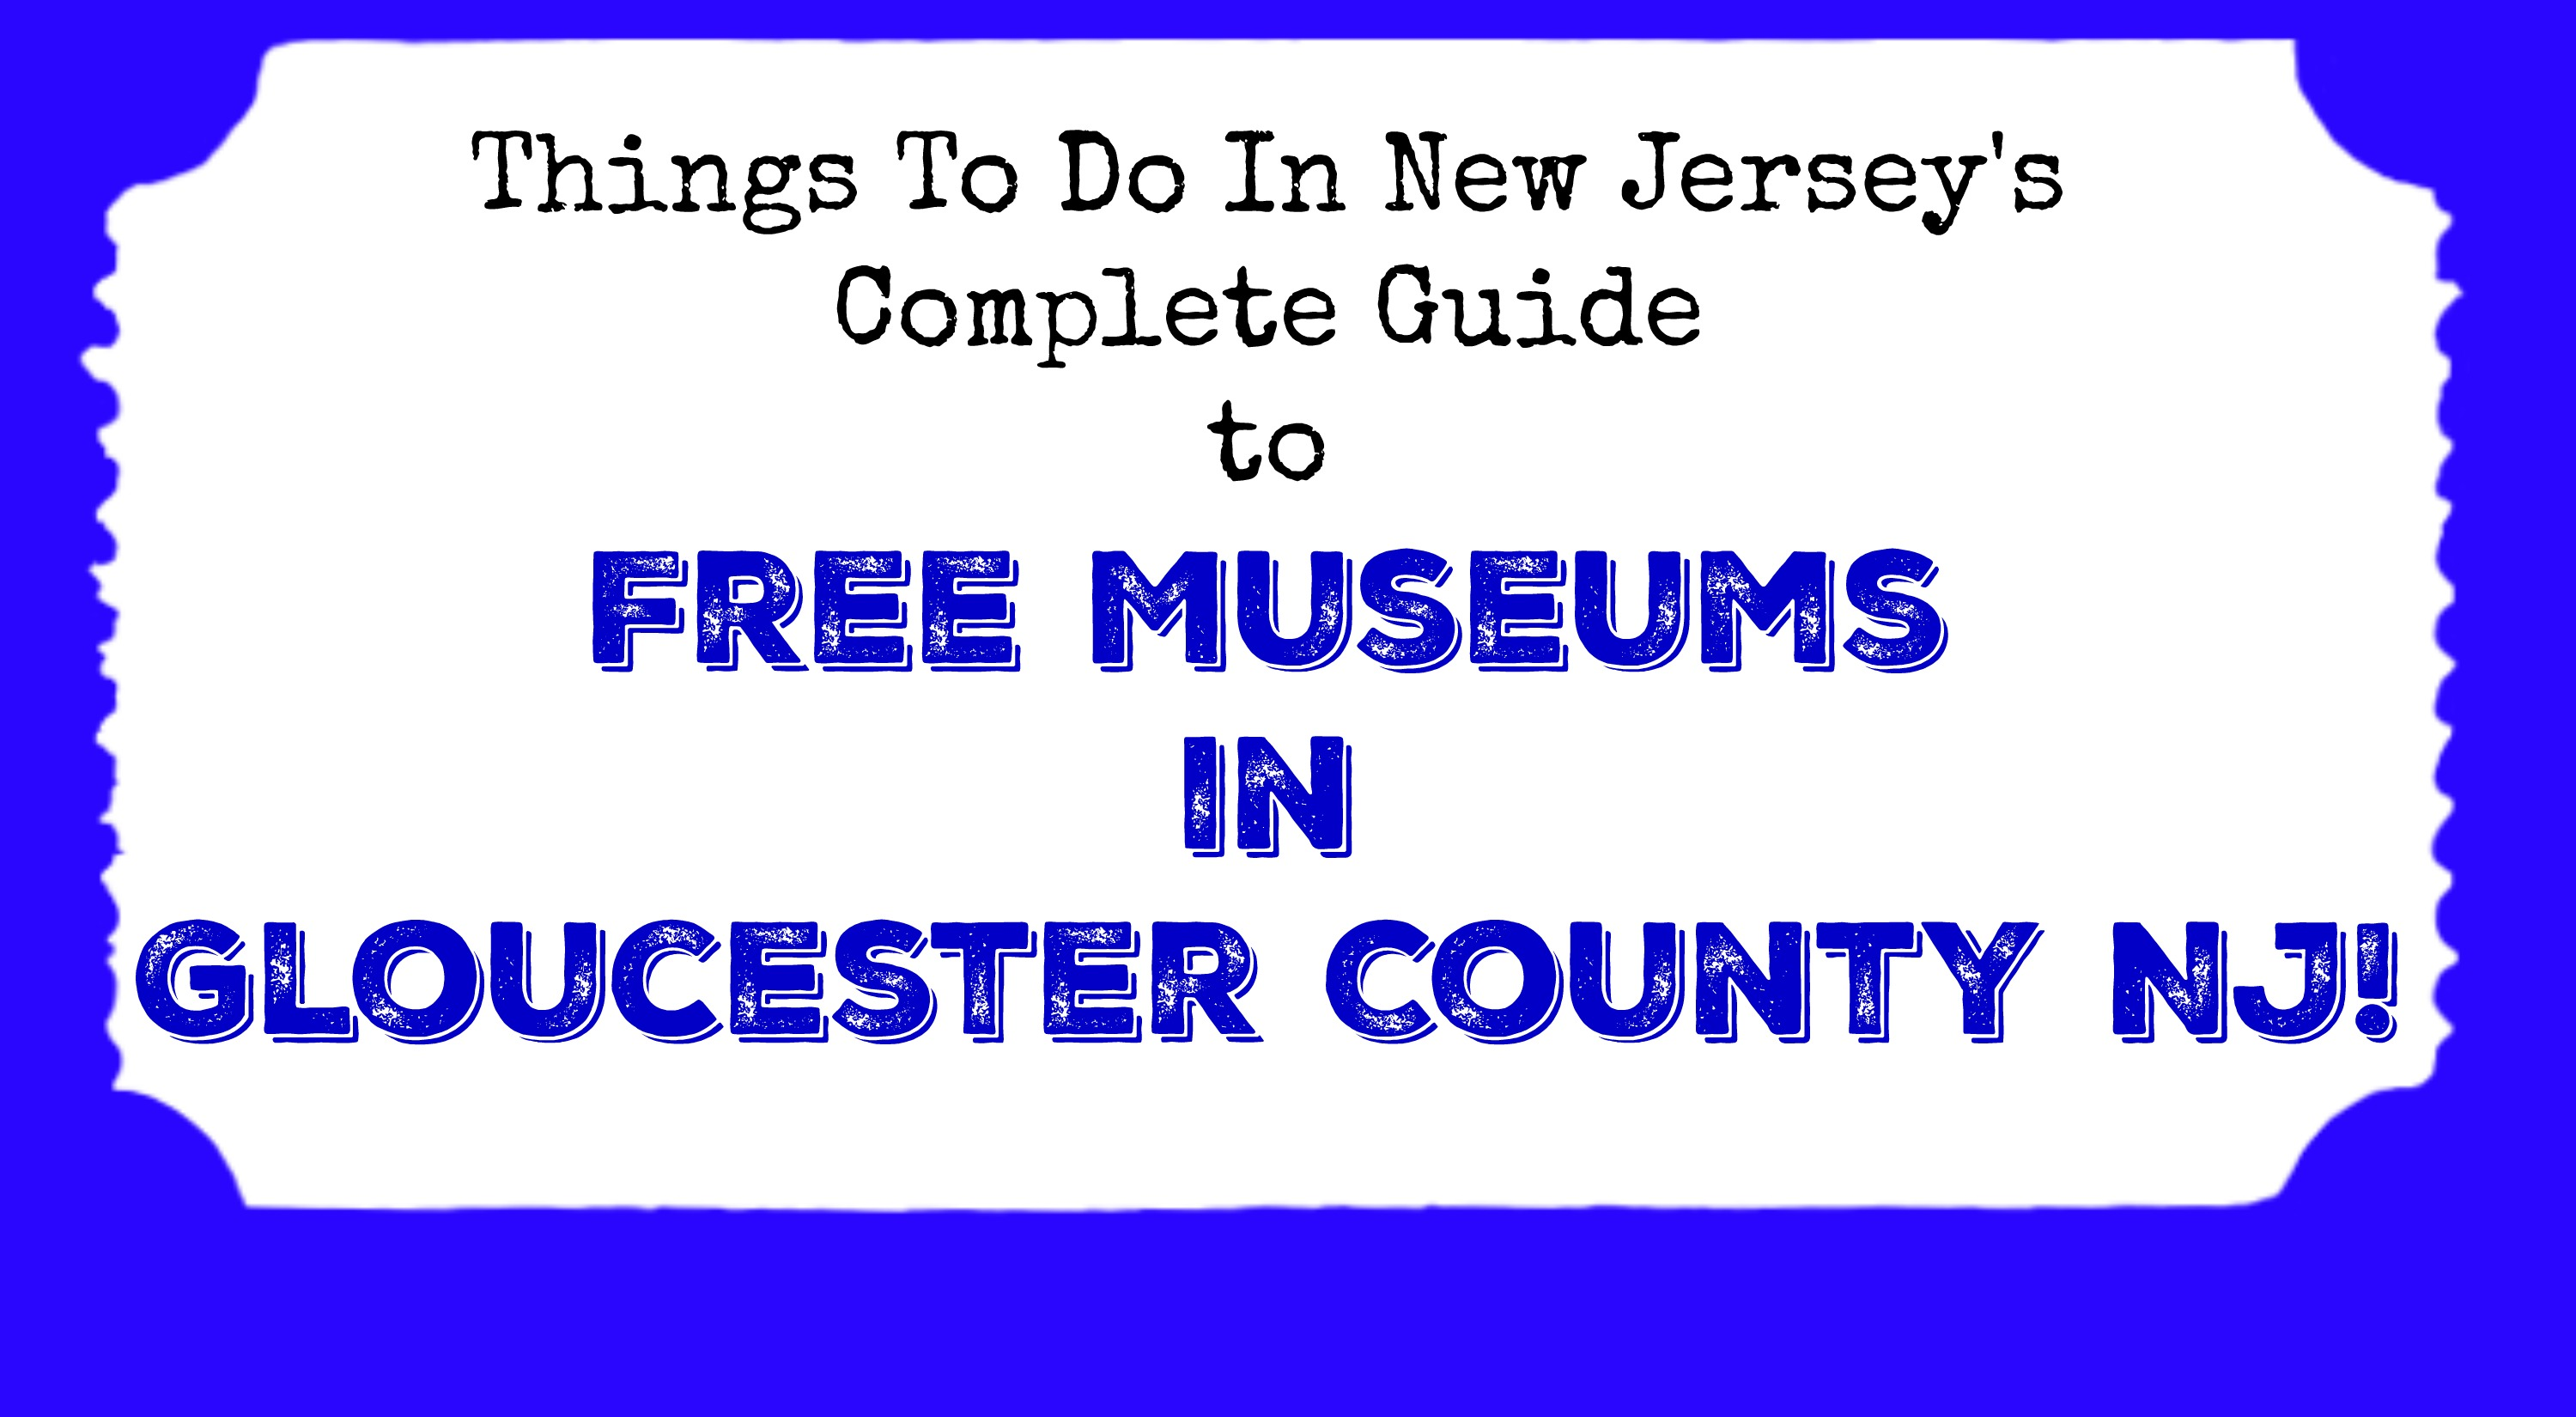 free museums in gloucester county nj - things to do in new jersey